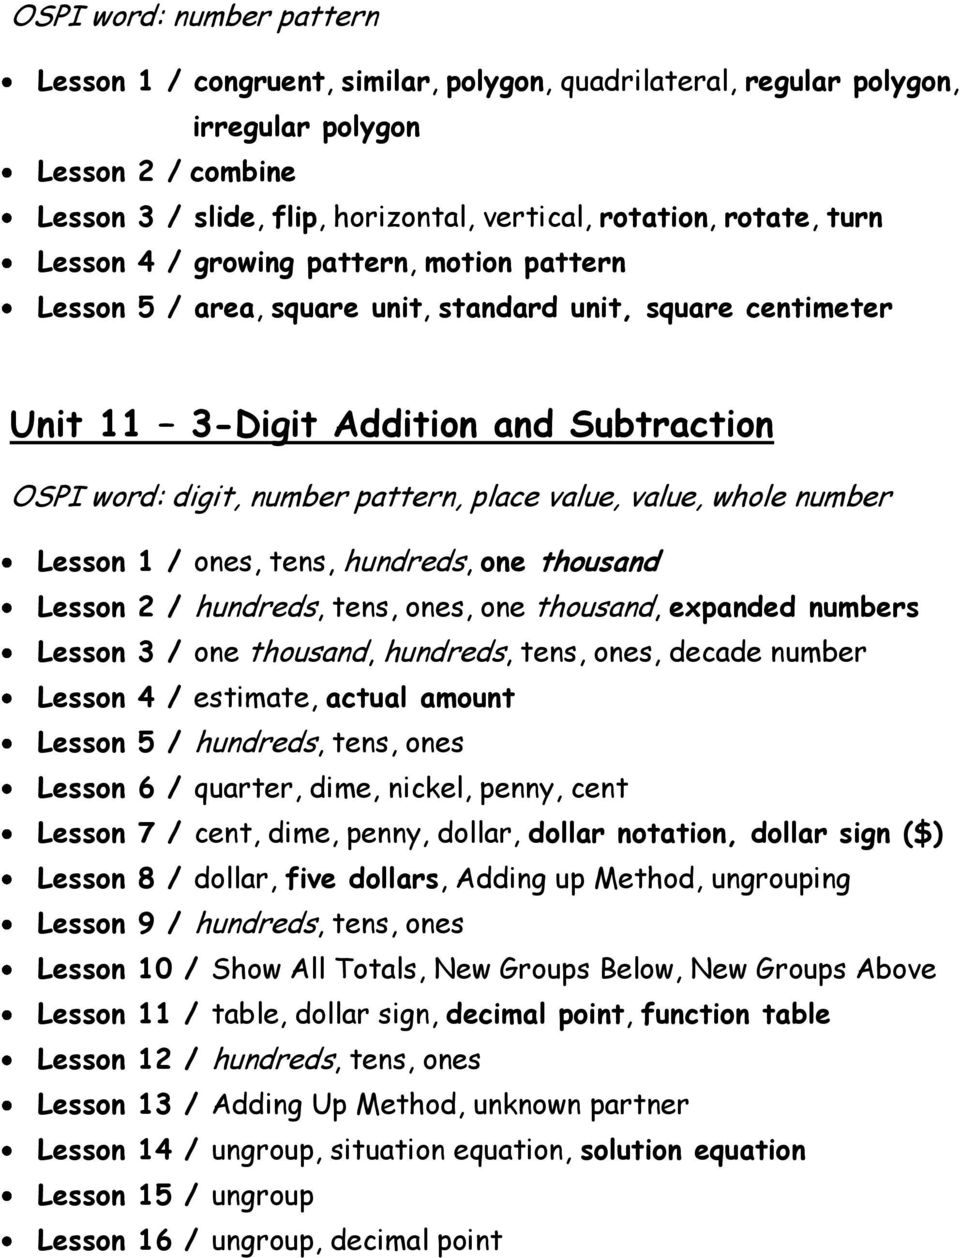 value, whole number Lesson 1 / ones, tens, hundreds, one thousand Lesson 2 / hundreds, tens, ones, one thousand, expanded numbers Lesson 3 / one thousand, hundreds, tens, ones, decade number Lesson 4